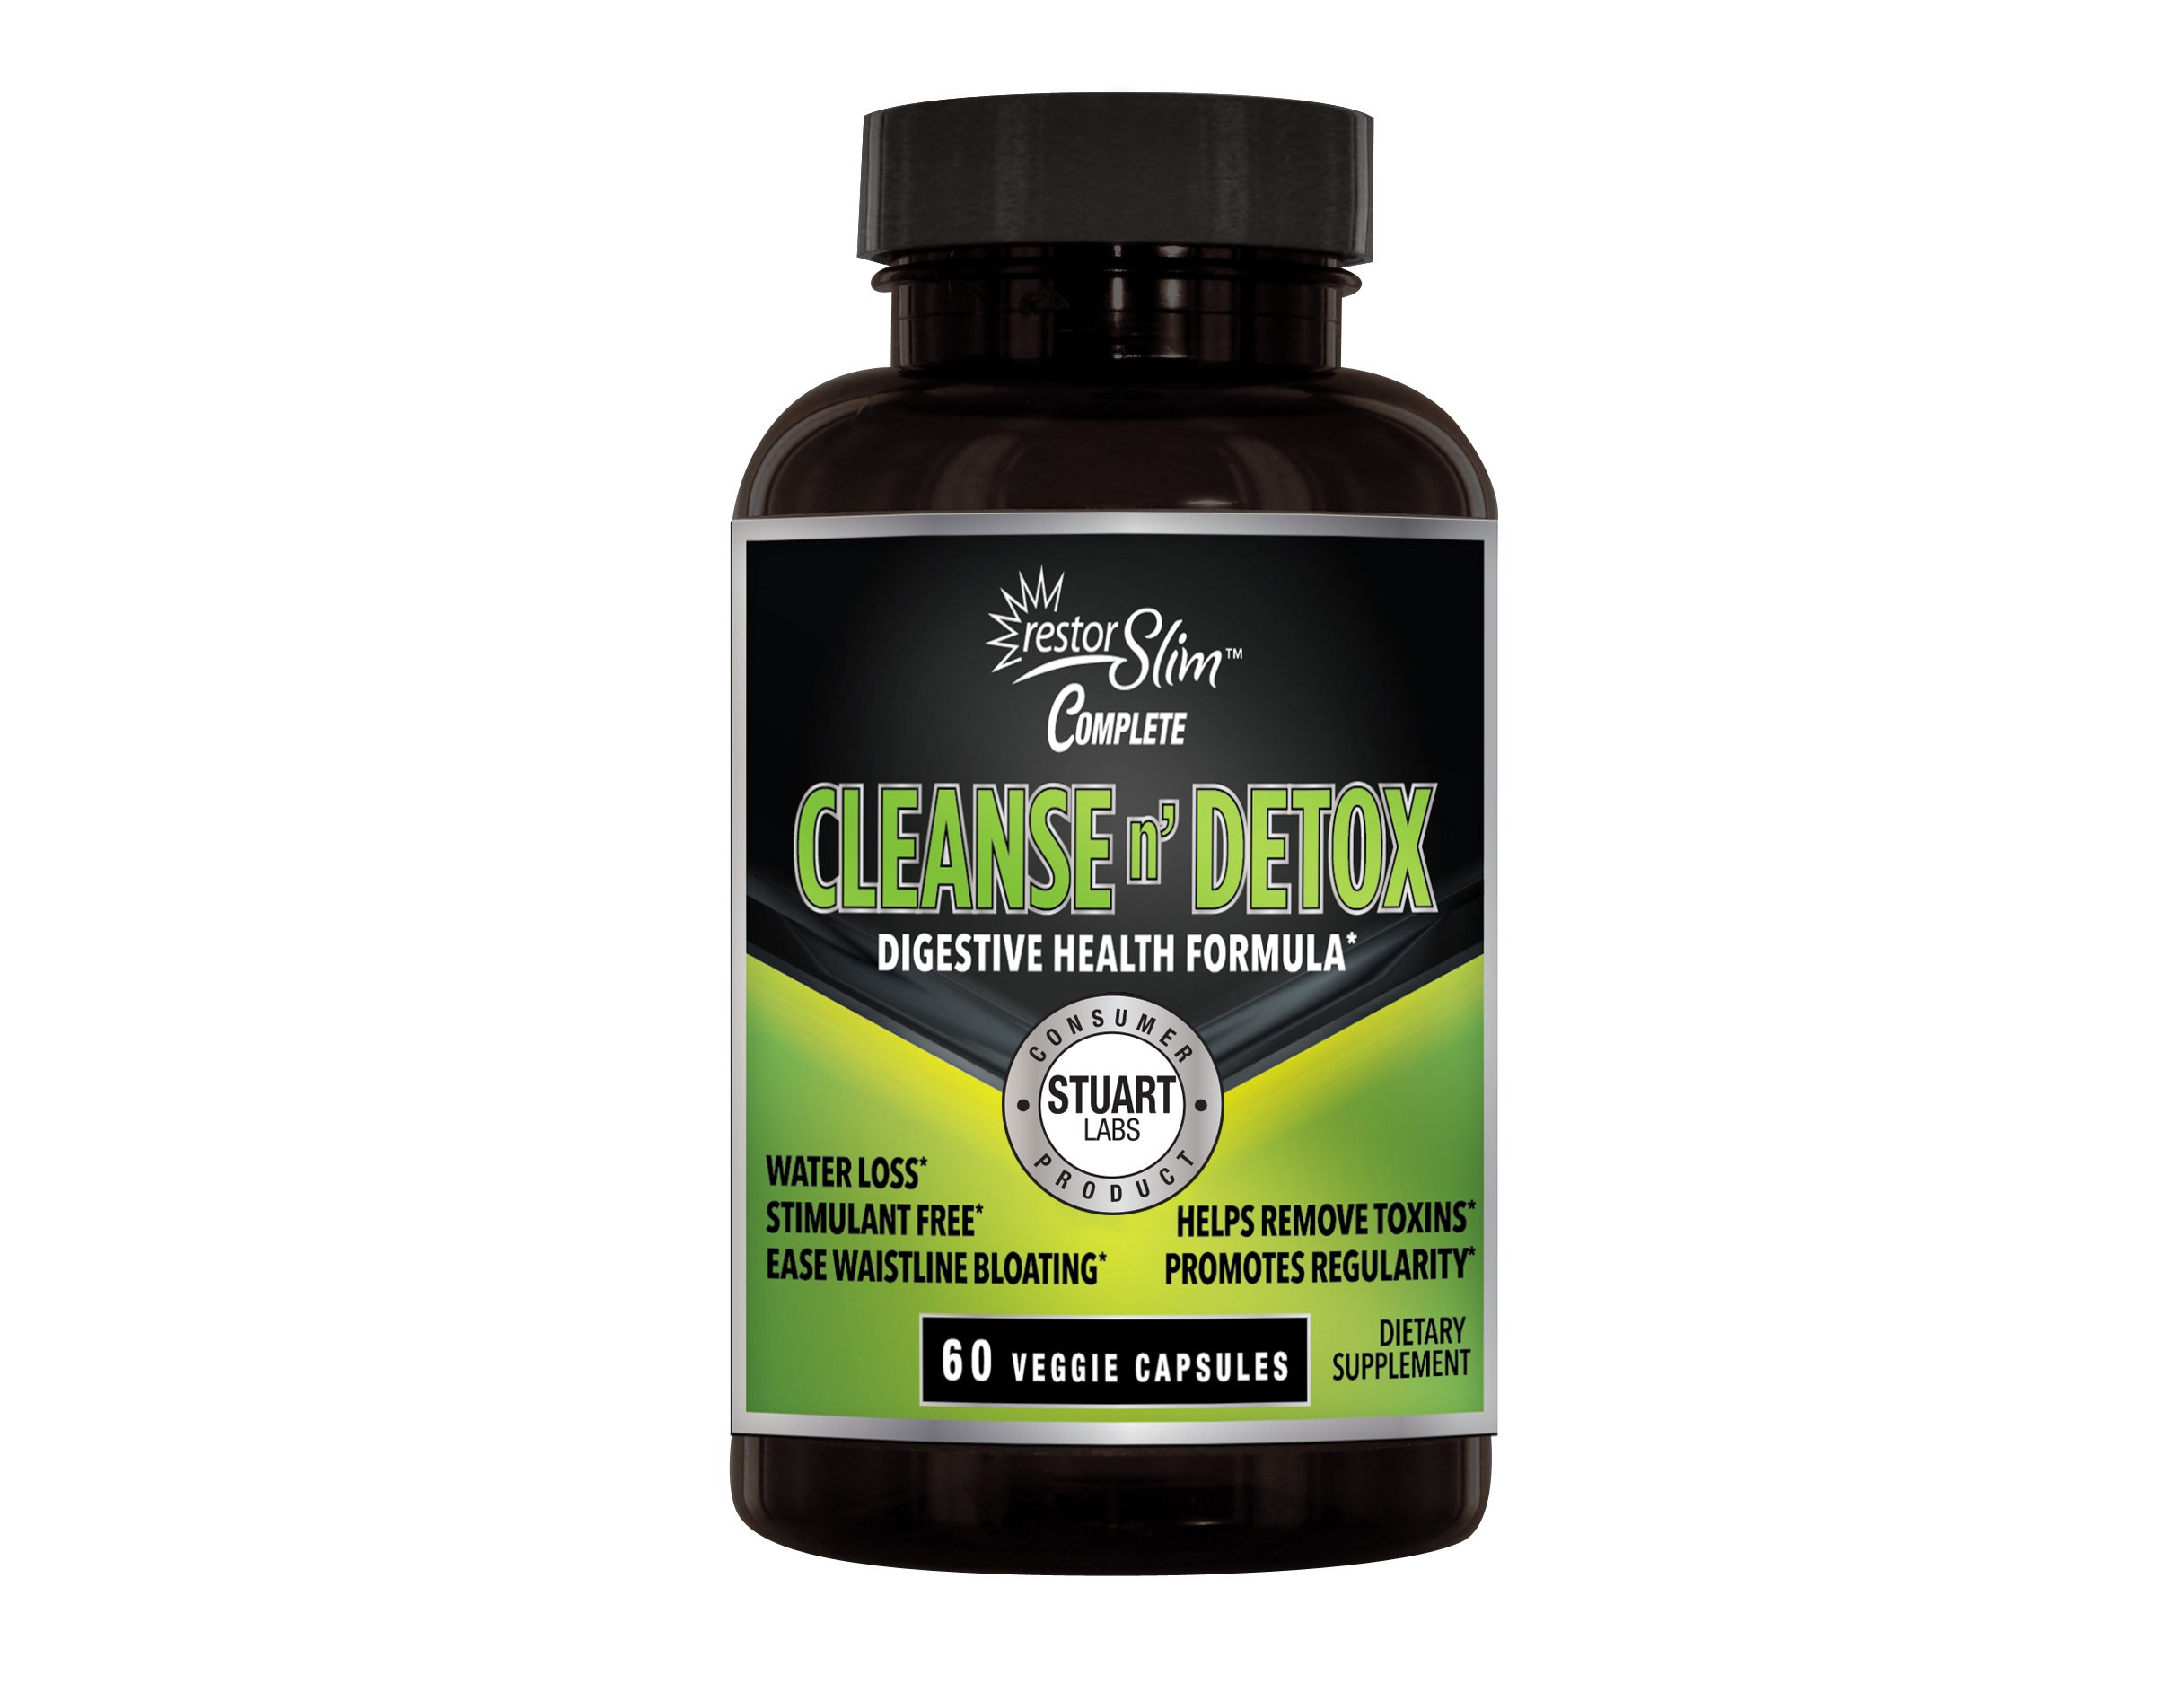 Restor Slim Cleanse and Detox (2 pack)- By Stuart CP Labs.